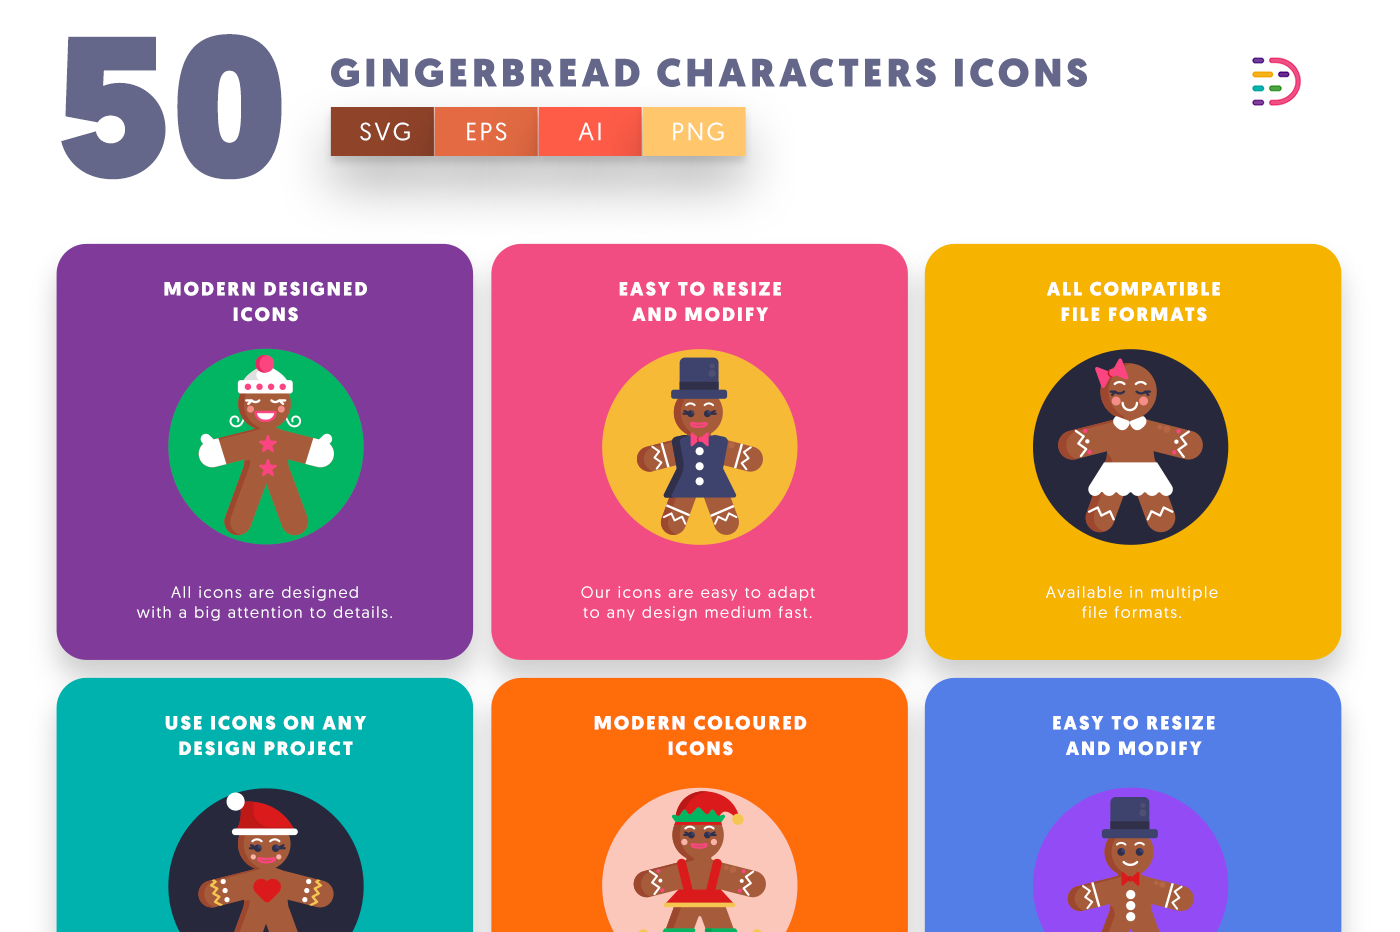 50 Gingerbread Characters Icons with colored backgrounds